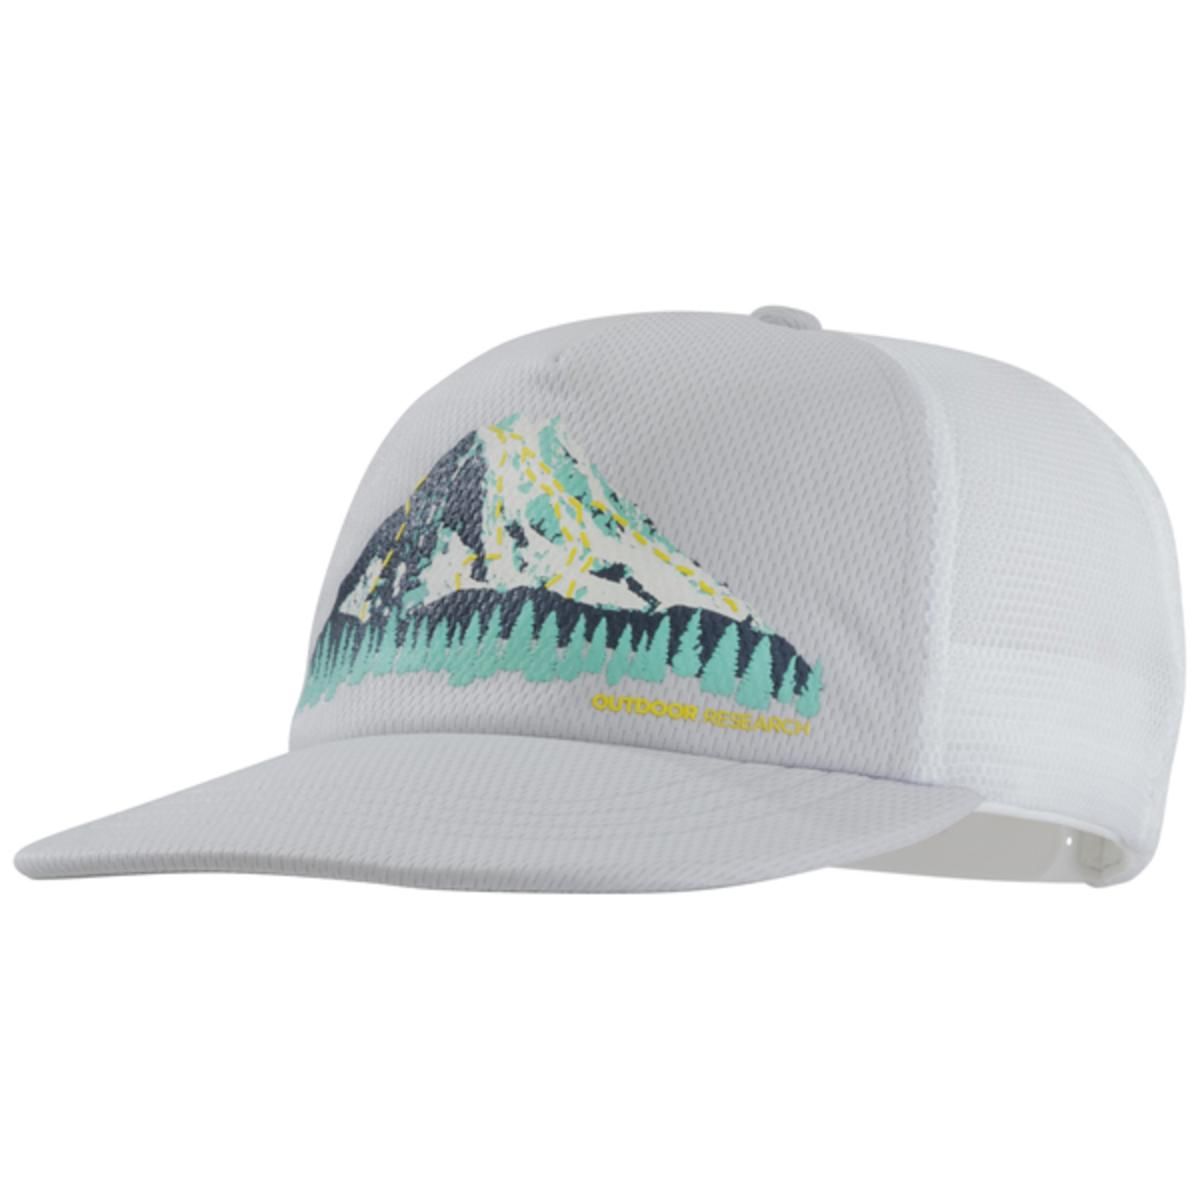 5ea1b2fe Outdoor Research Performance Trucker - Trail Run Cap - The Warming Store